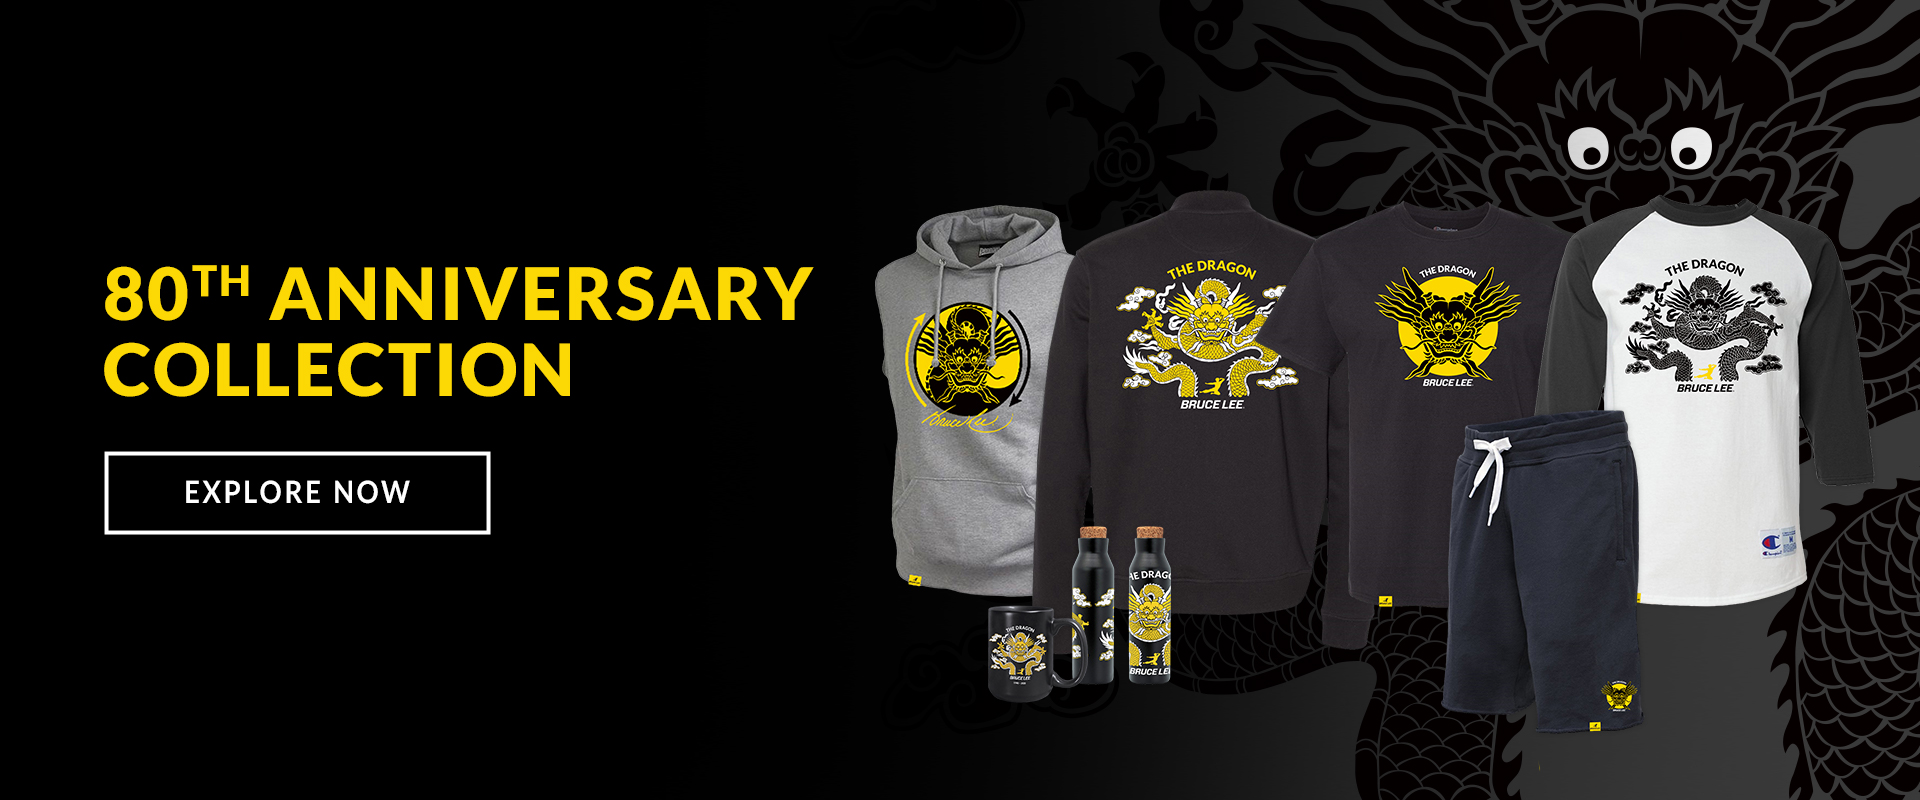 Bruce Lee 80th Anniversary Collection